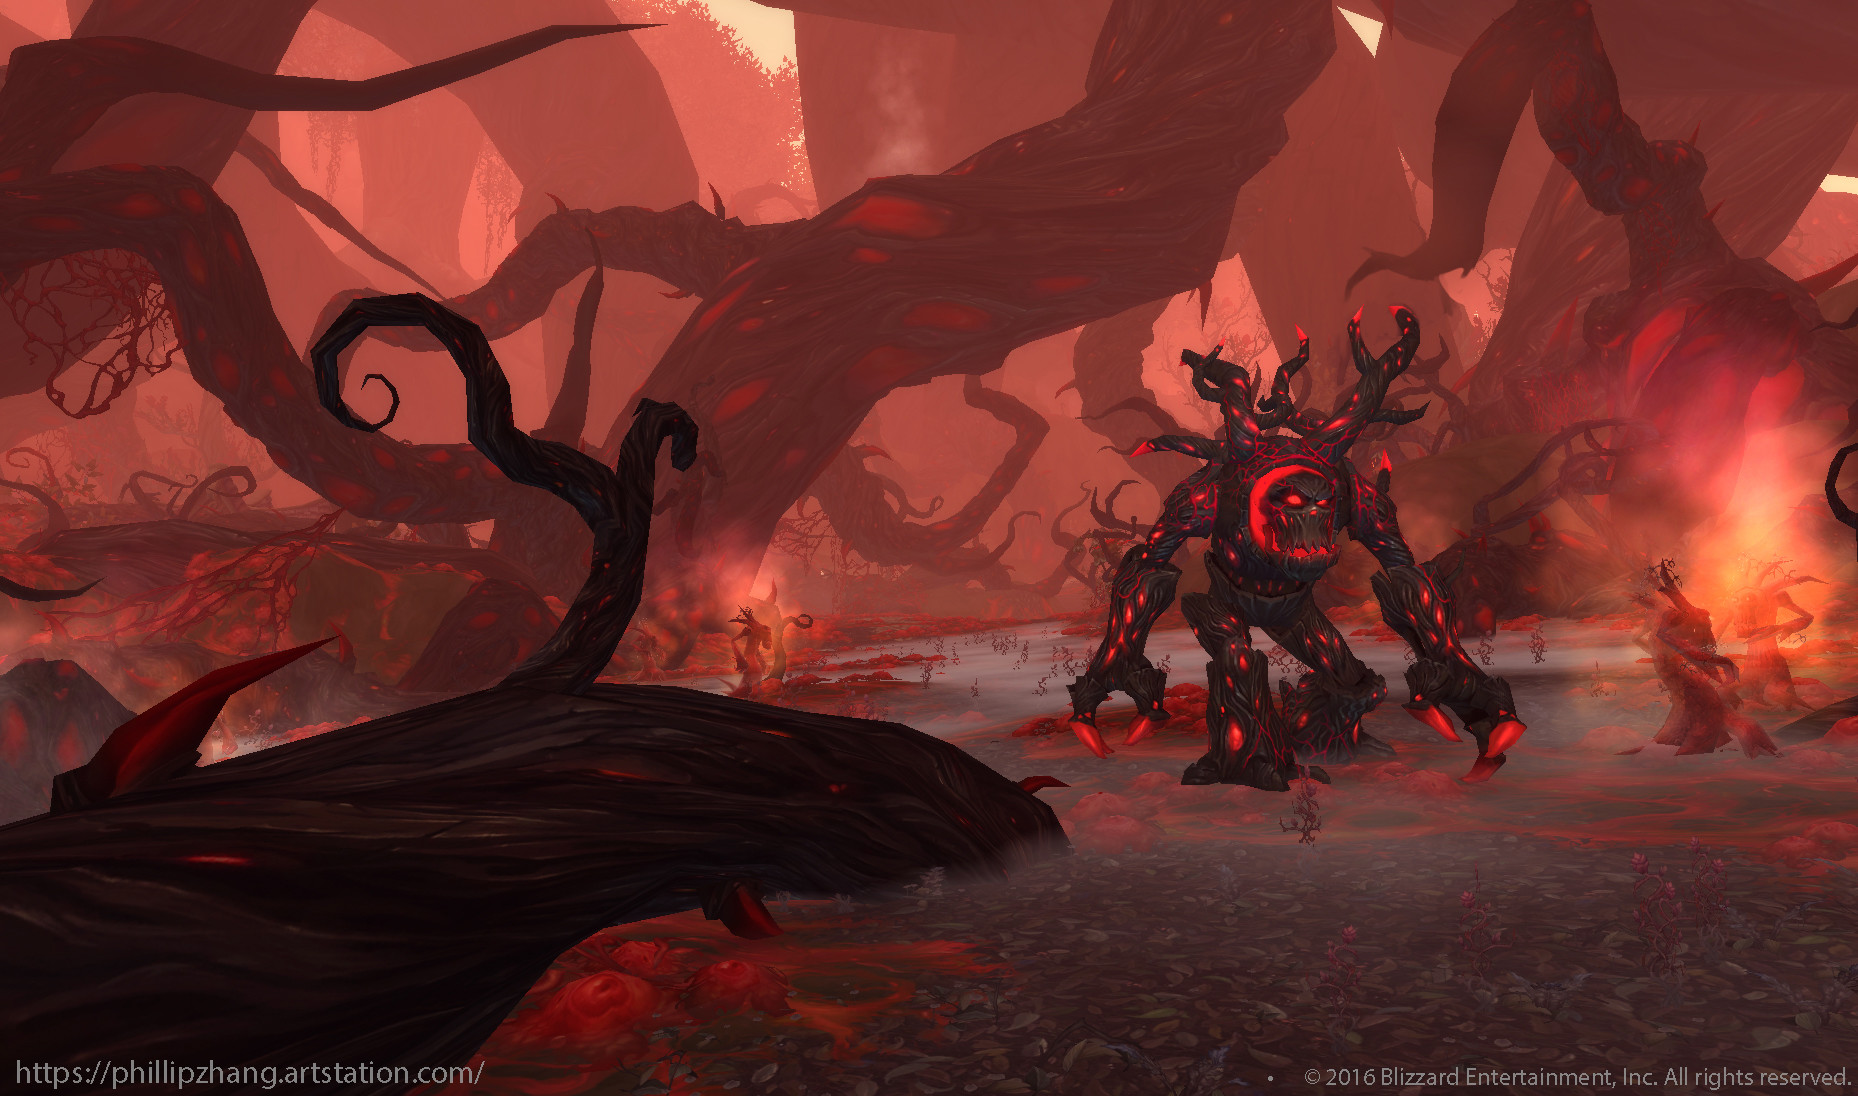 Can World Of Warcraft Screenshots Be Used In Art Projects